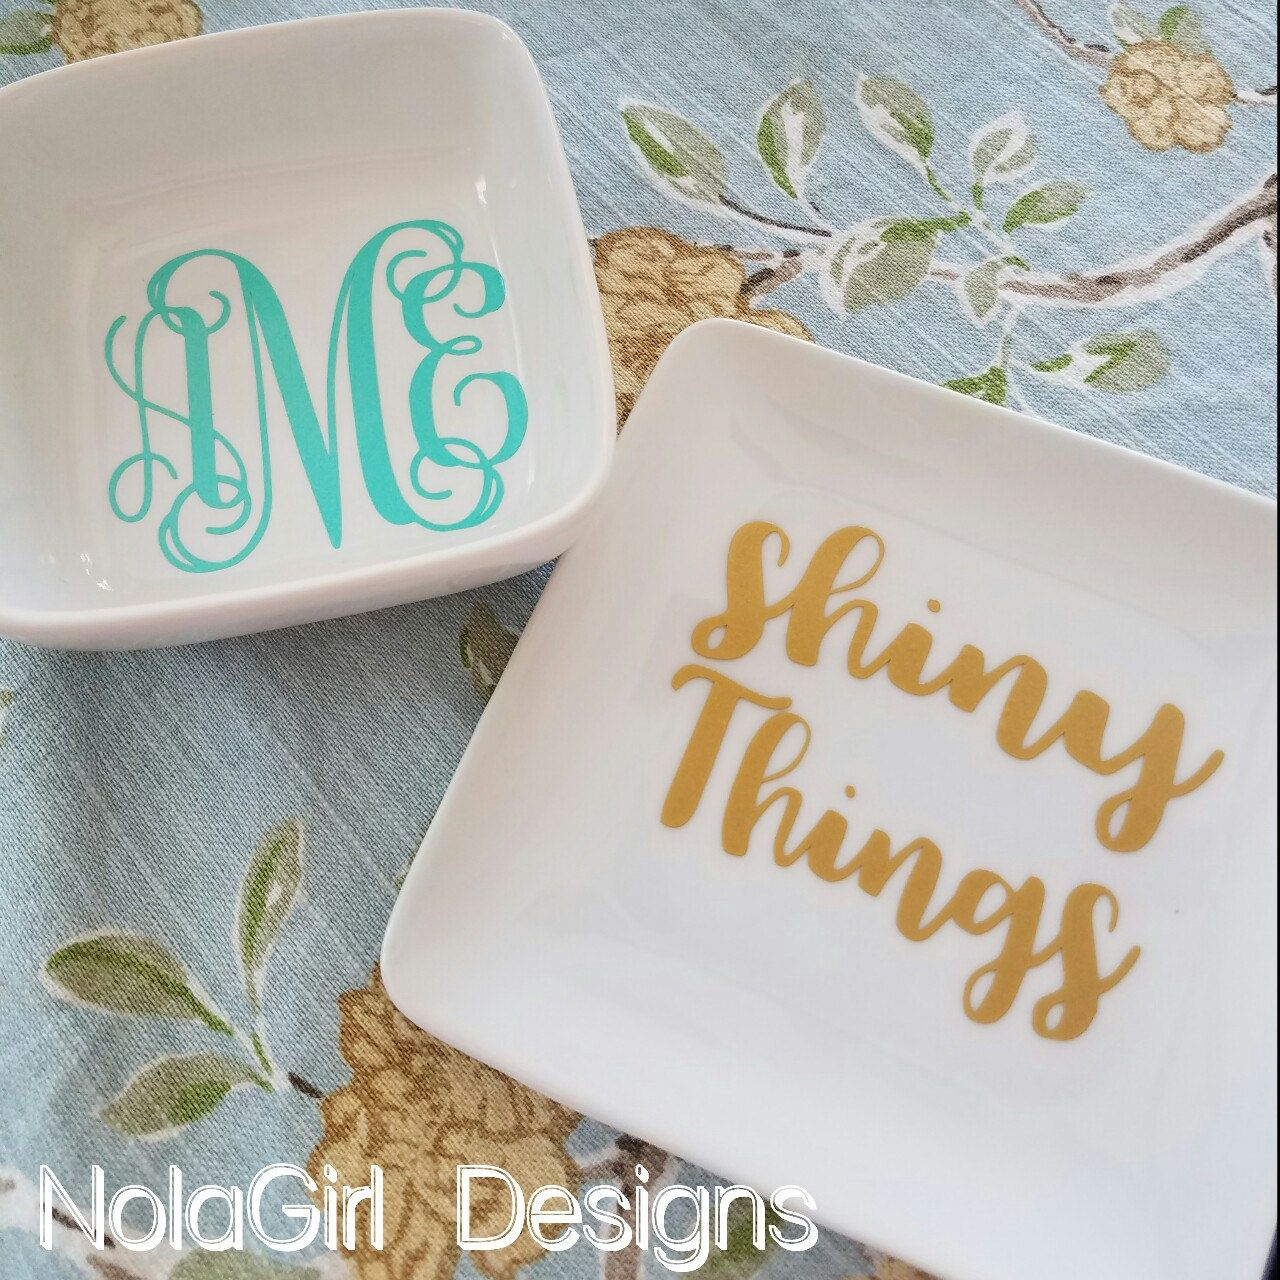 Ring dish bridesmaid gift monogrammed ring dish gifts for her ring dish bridesmaid gift monogrammed ring dish gifts for her custom colors custom gift ladies momento christmas gift teen girl negle Gallery